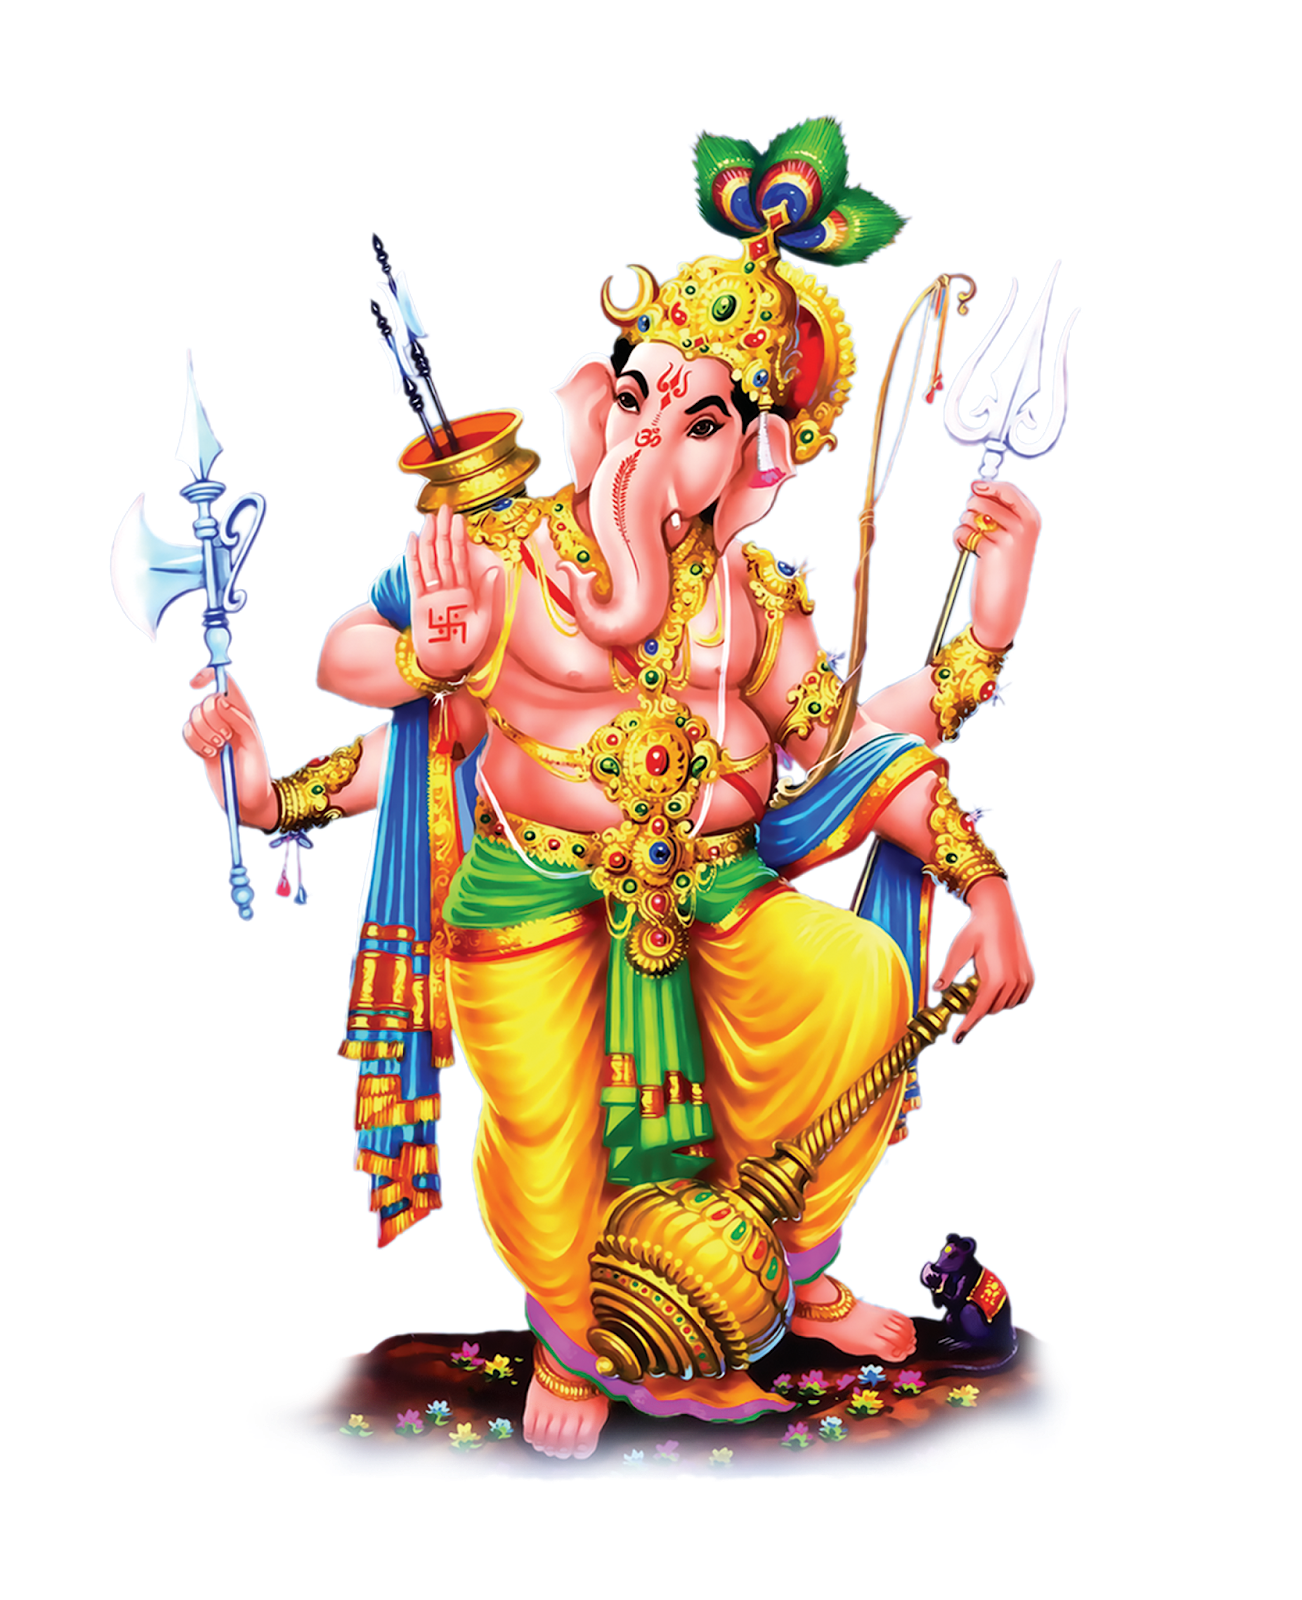 famous god vinayaka HD PNG photos and images free downloads.